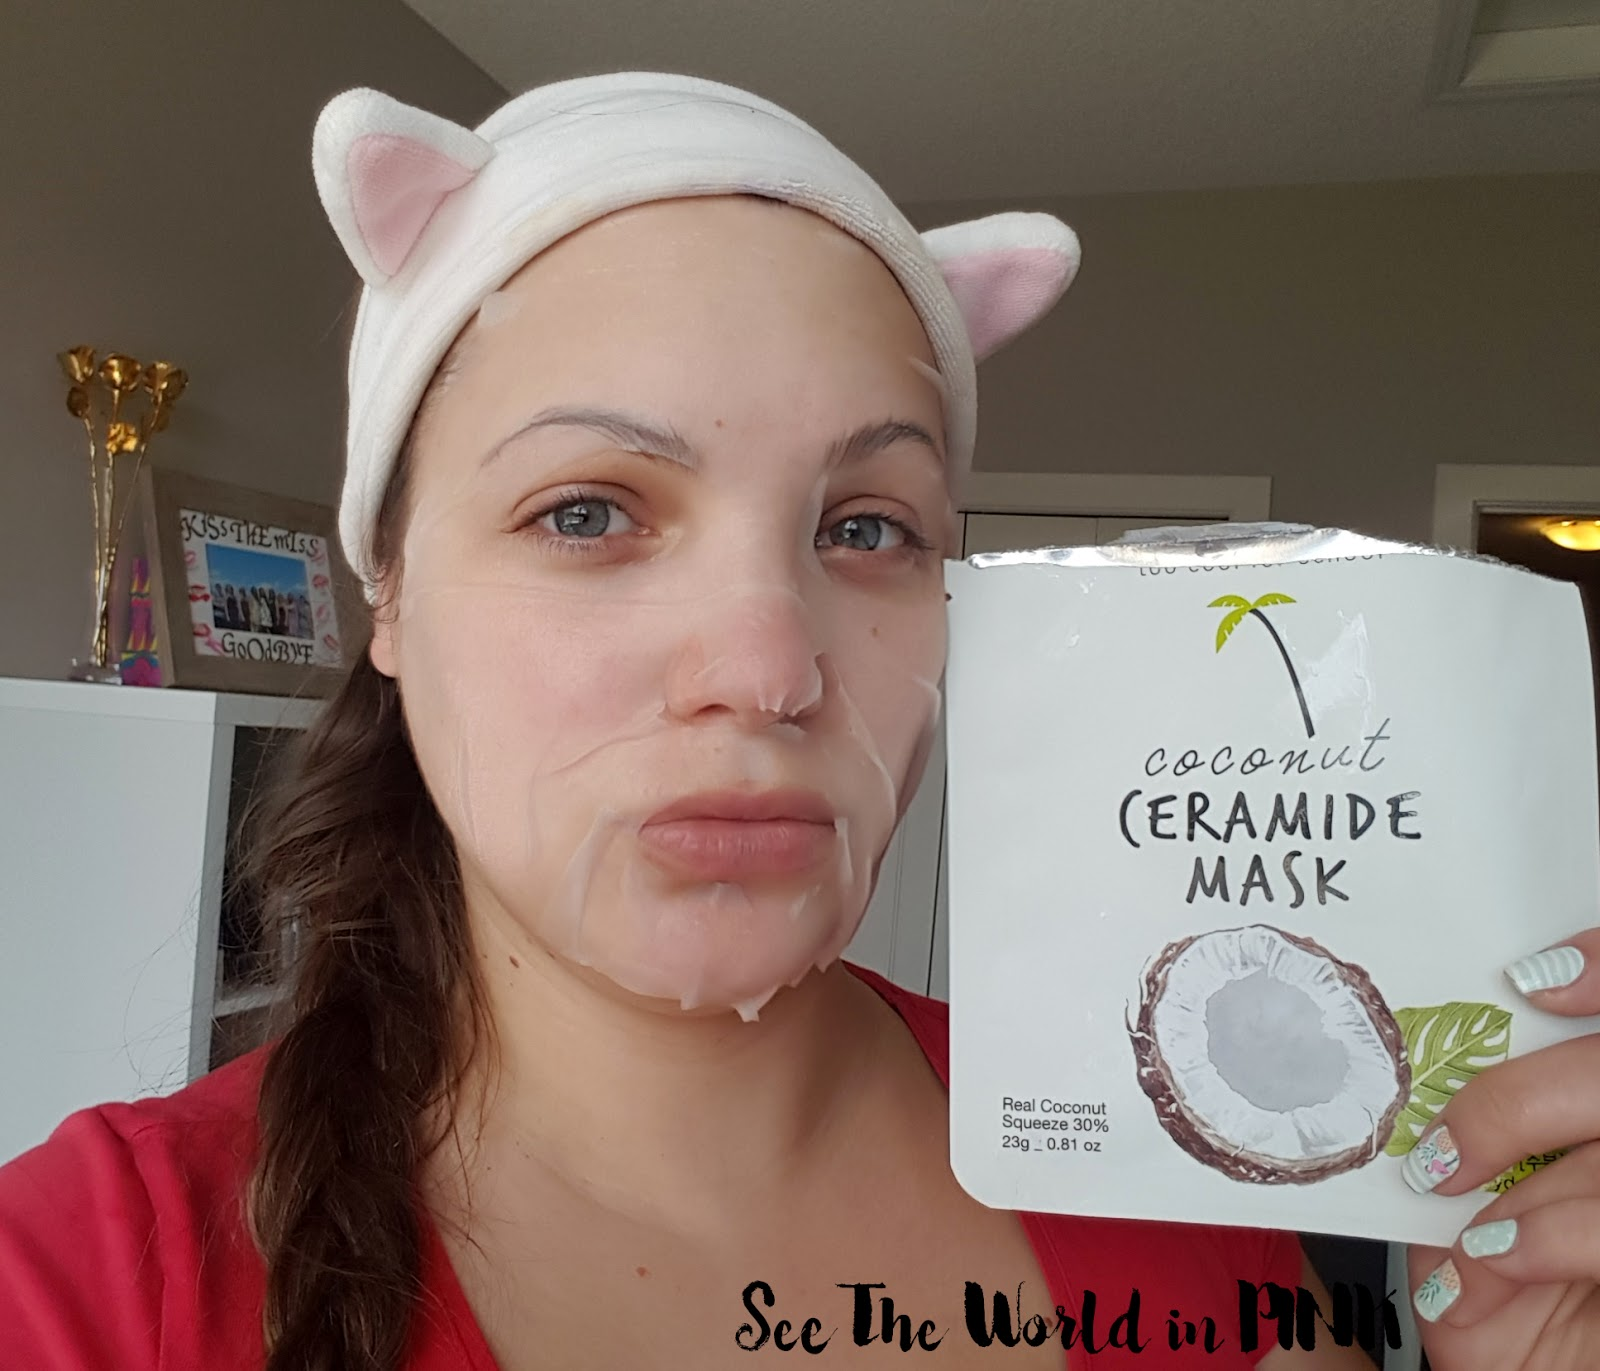 Mask Wednesday - Too Cool For School Coconut Ceramide Mask